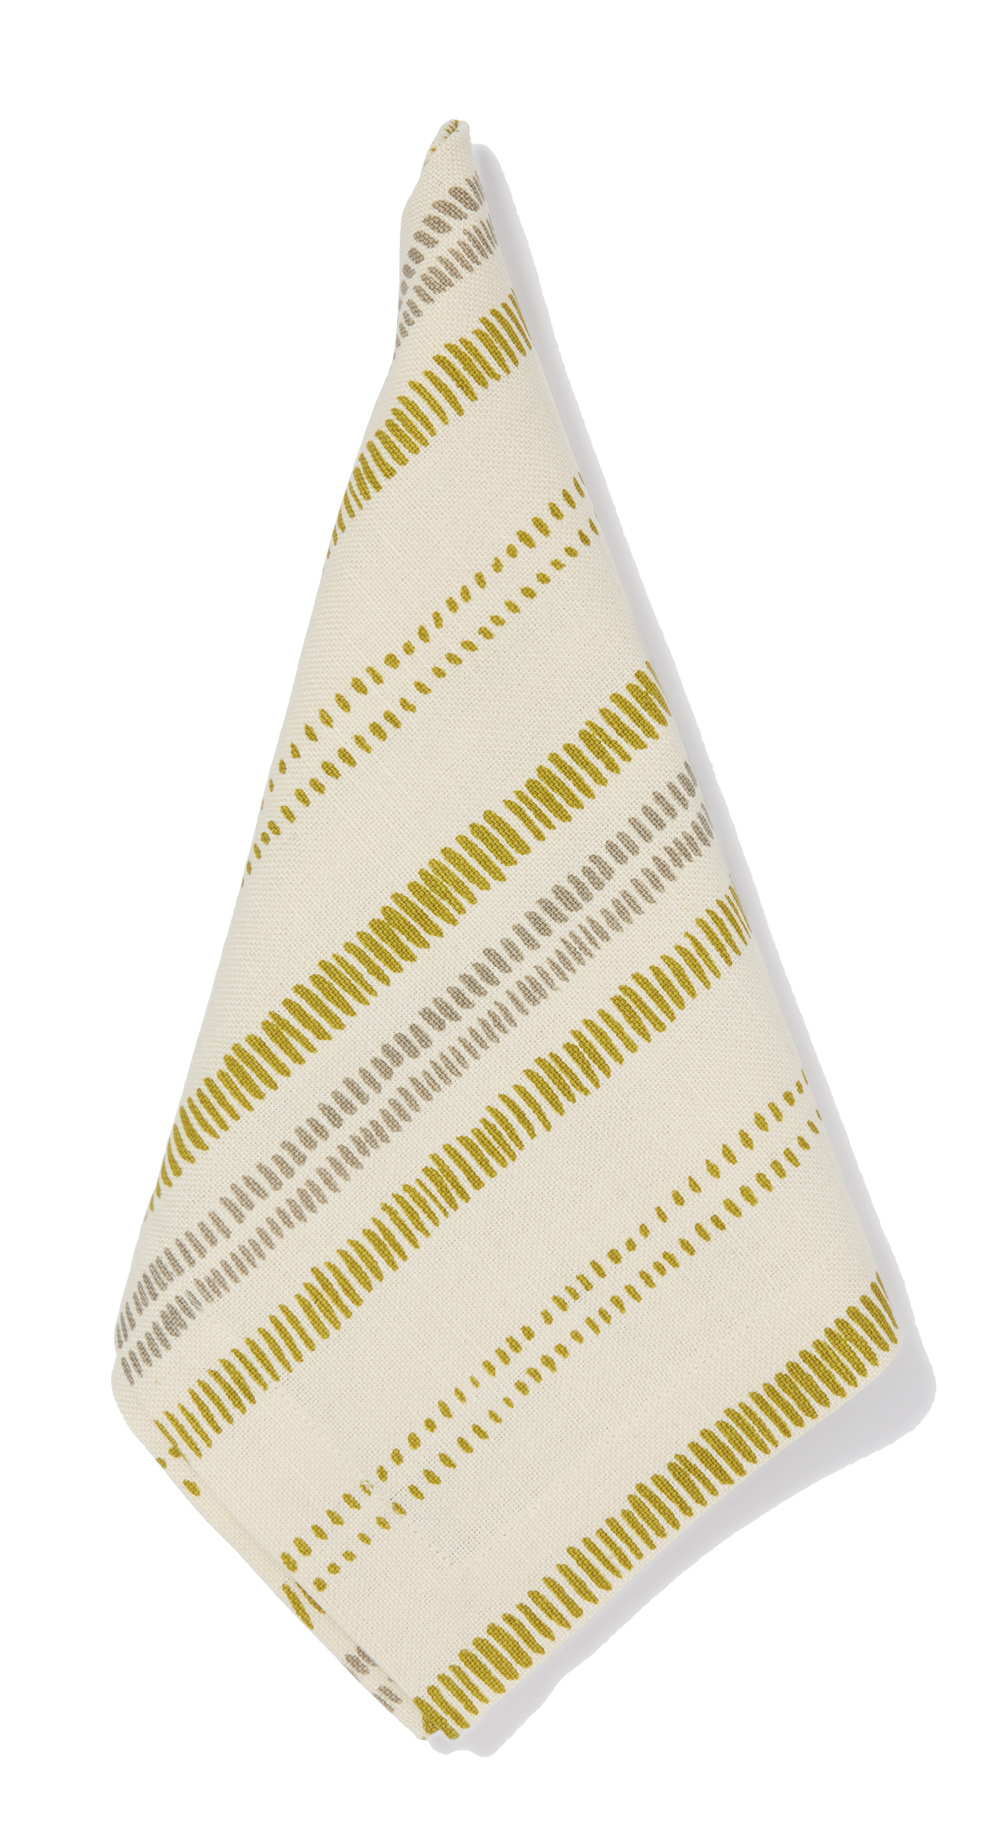 RARN03_Citron Grey Railroad Napkin.jpg